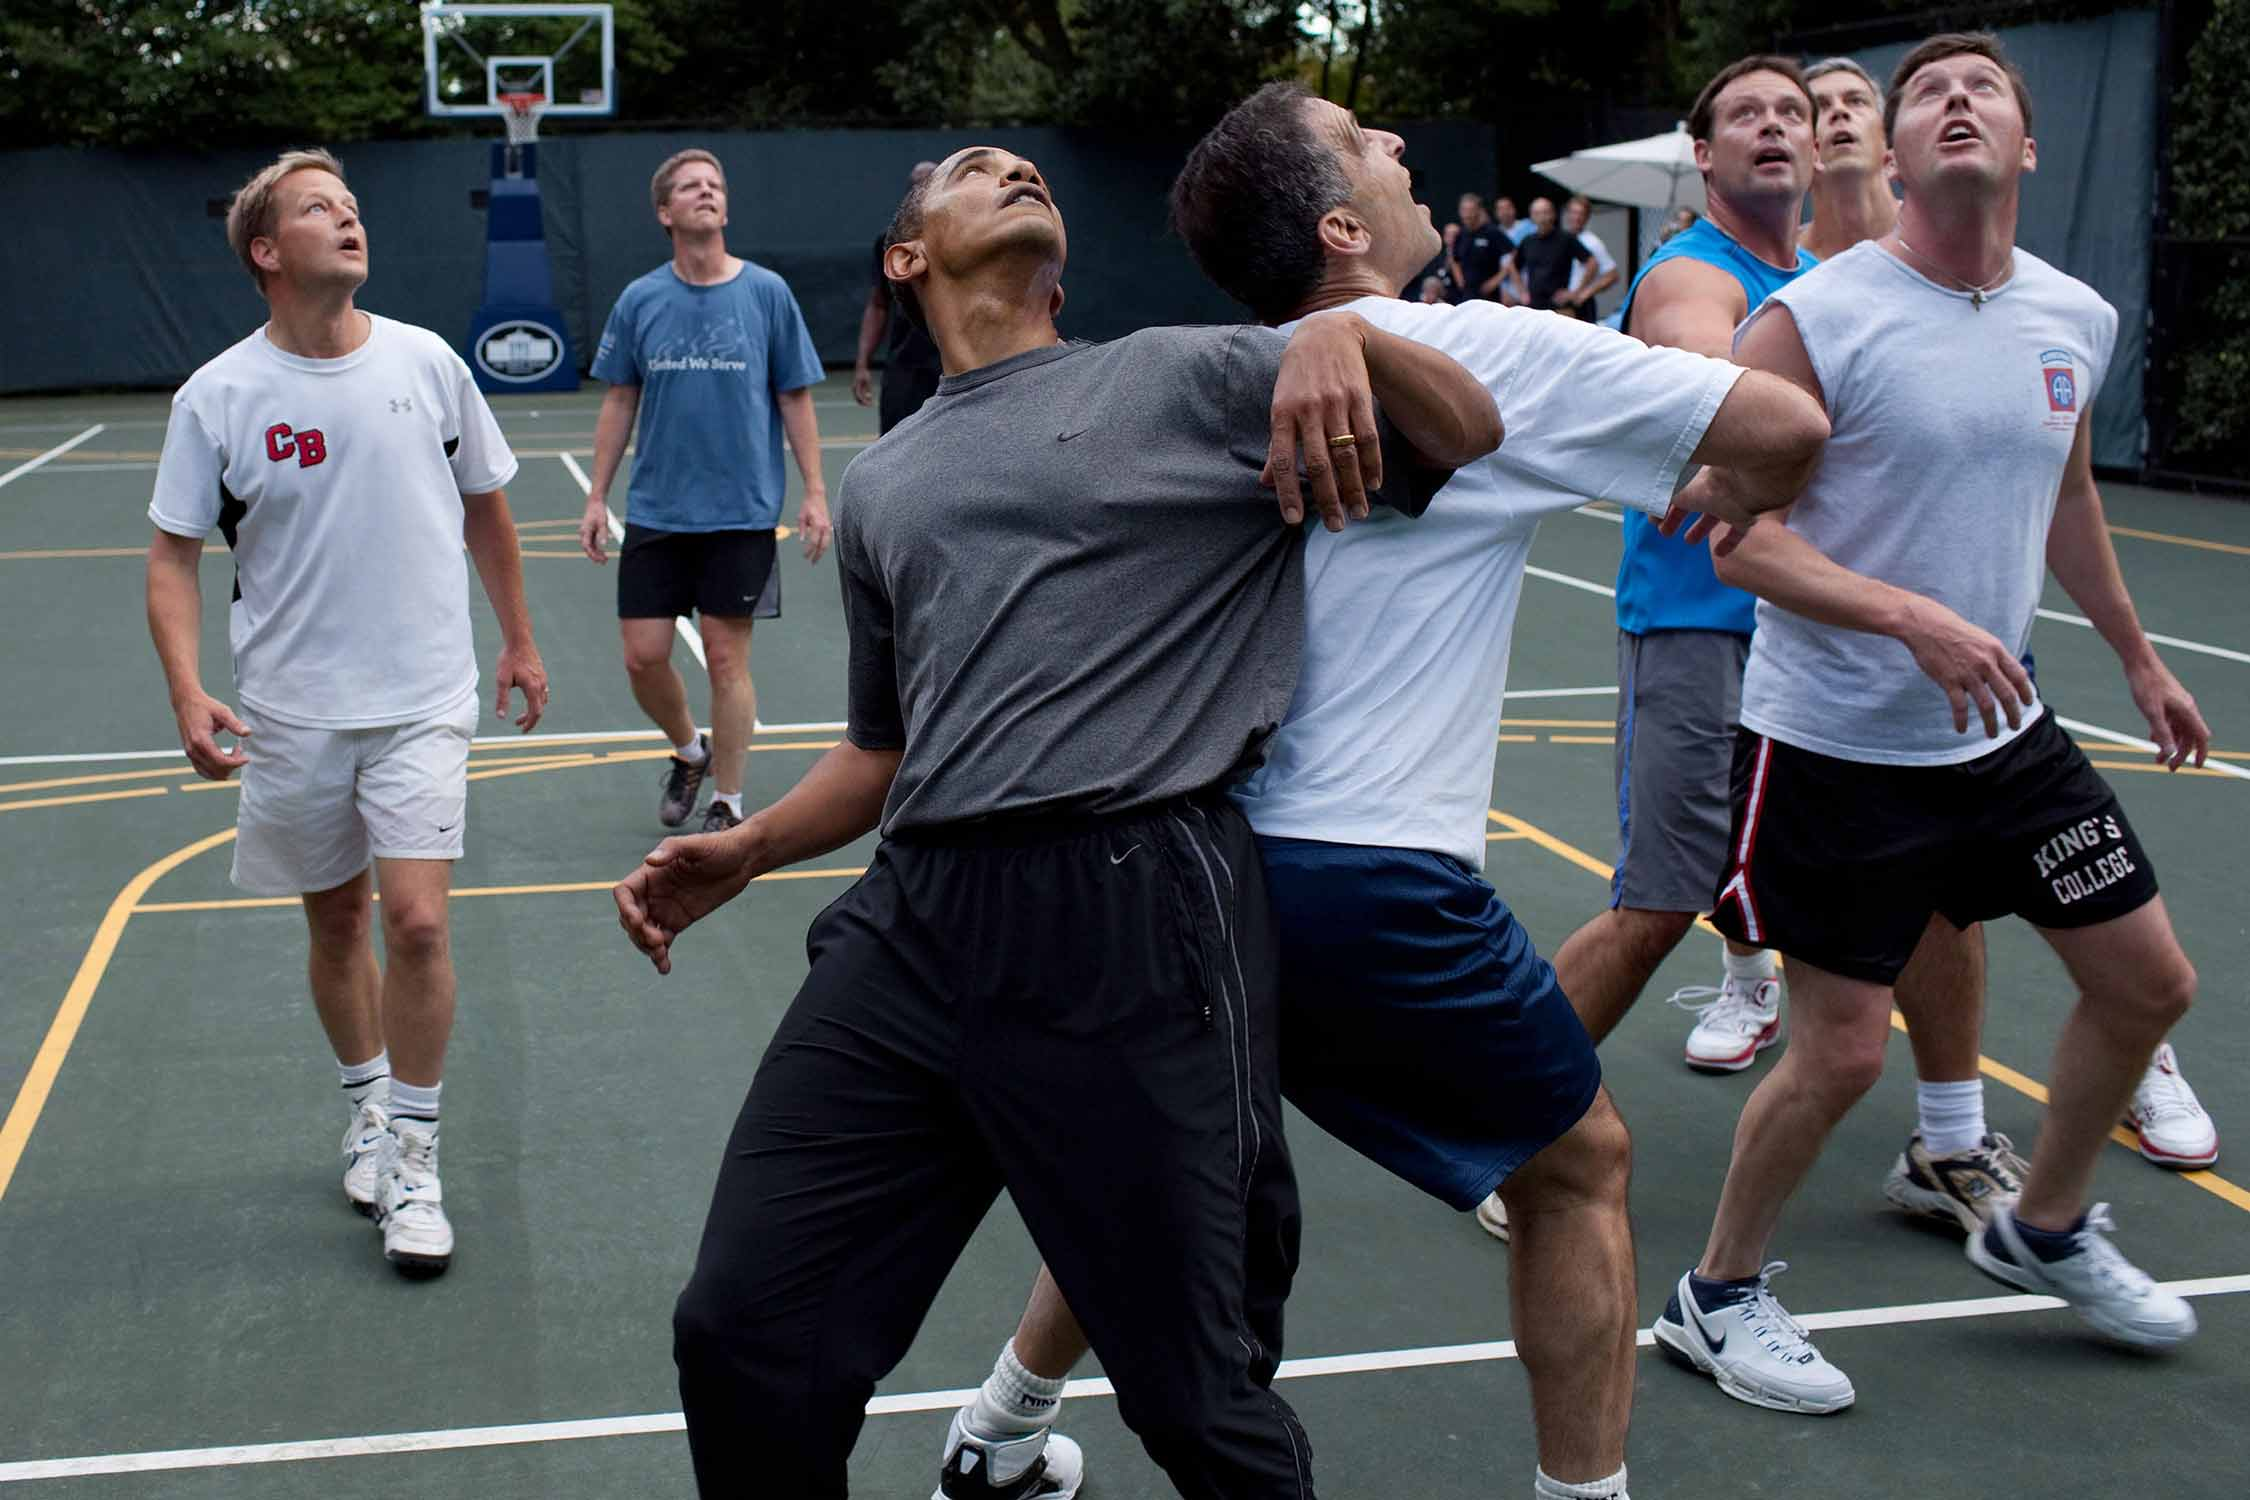 President Barack Obama plays basketball with cabinet secretaries and Congressmen on a White House court in 2009.